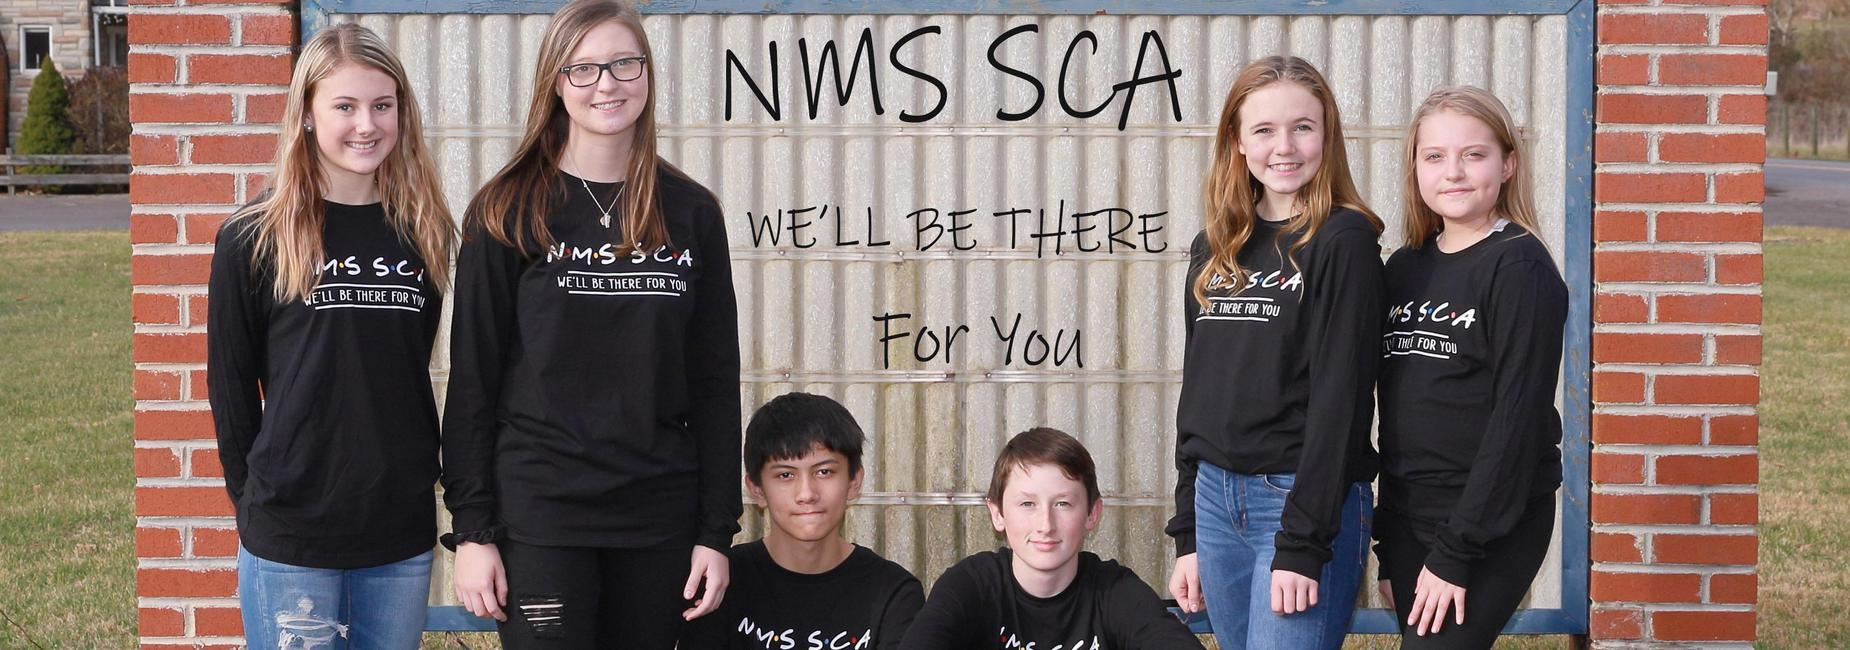 NMS SCA member infront of the NMS sign